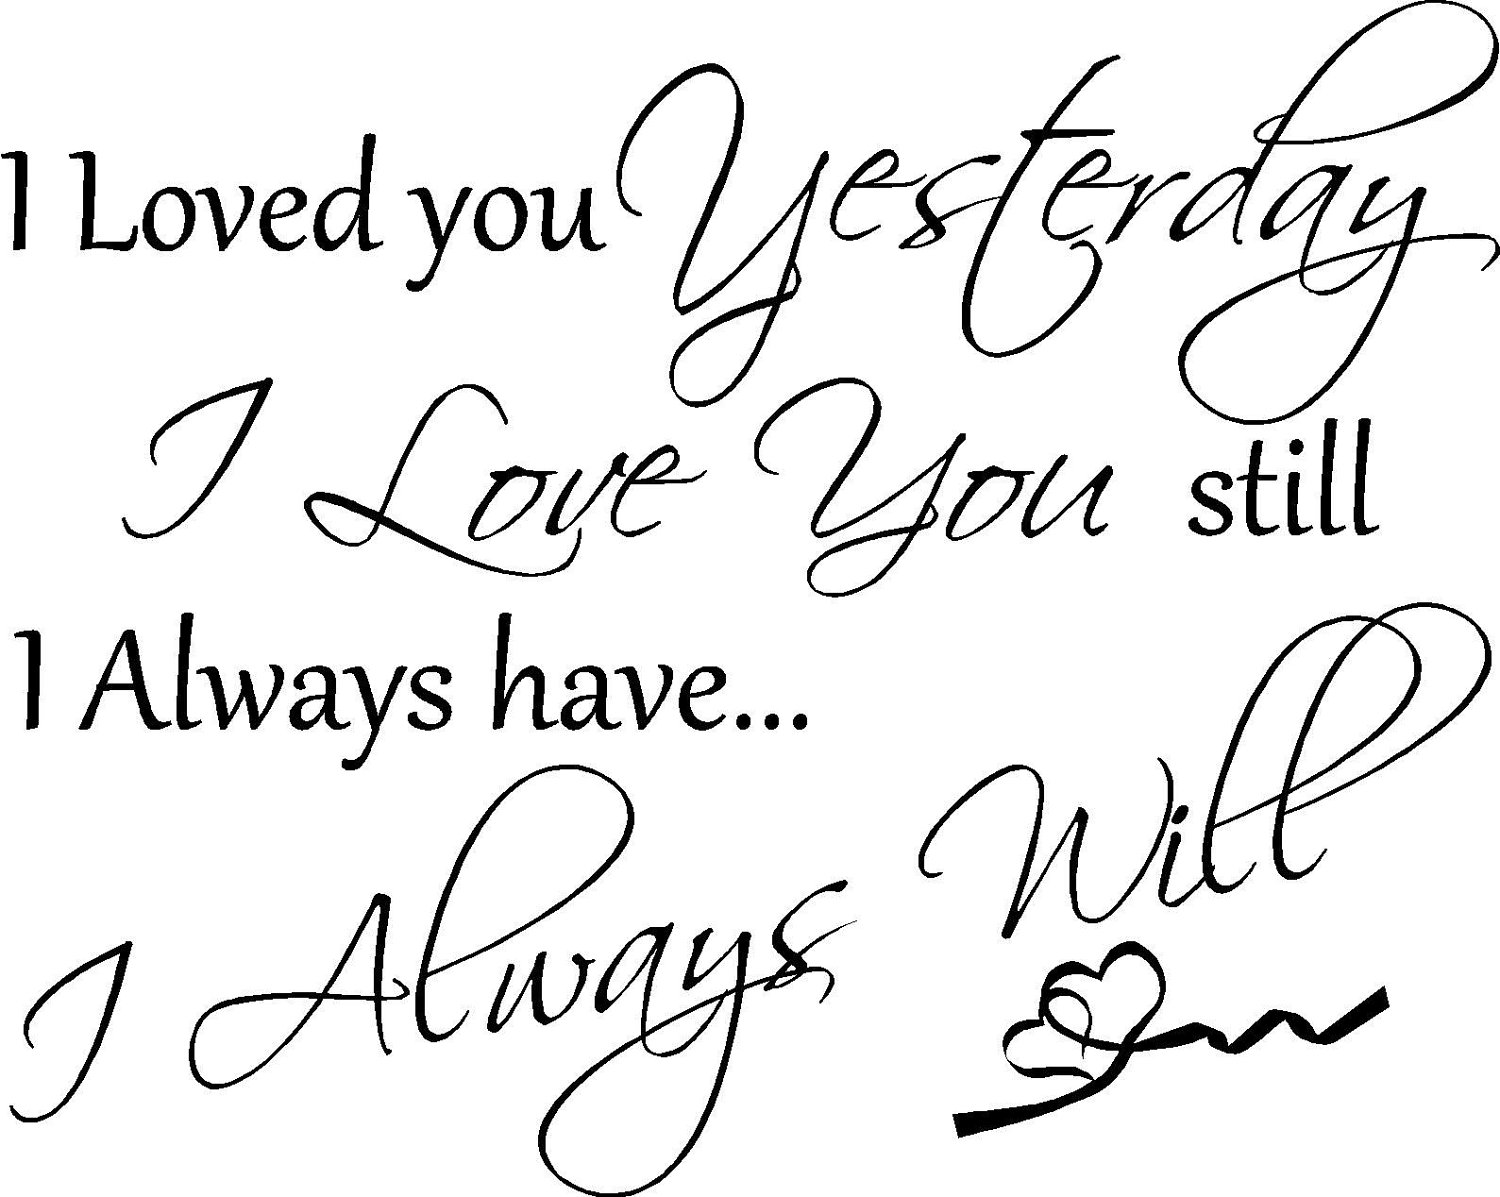 I Love You Pictures N Quotes : love-you-picture-quotes-quote-i-loved-you-yesterday-love-still ...